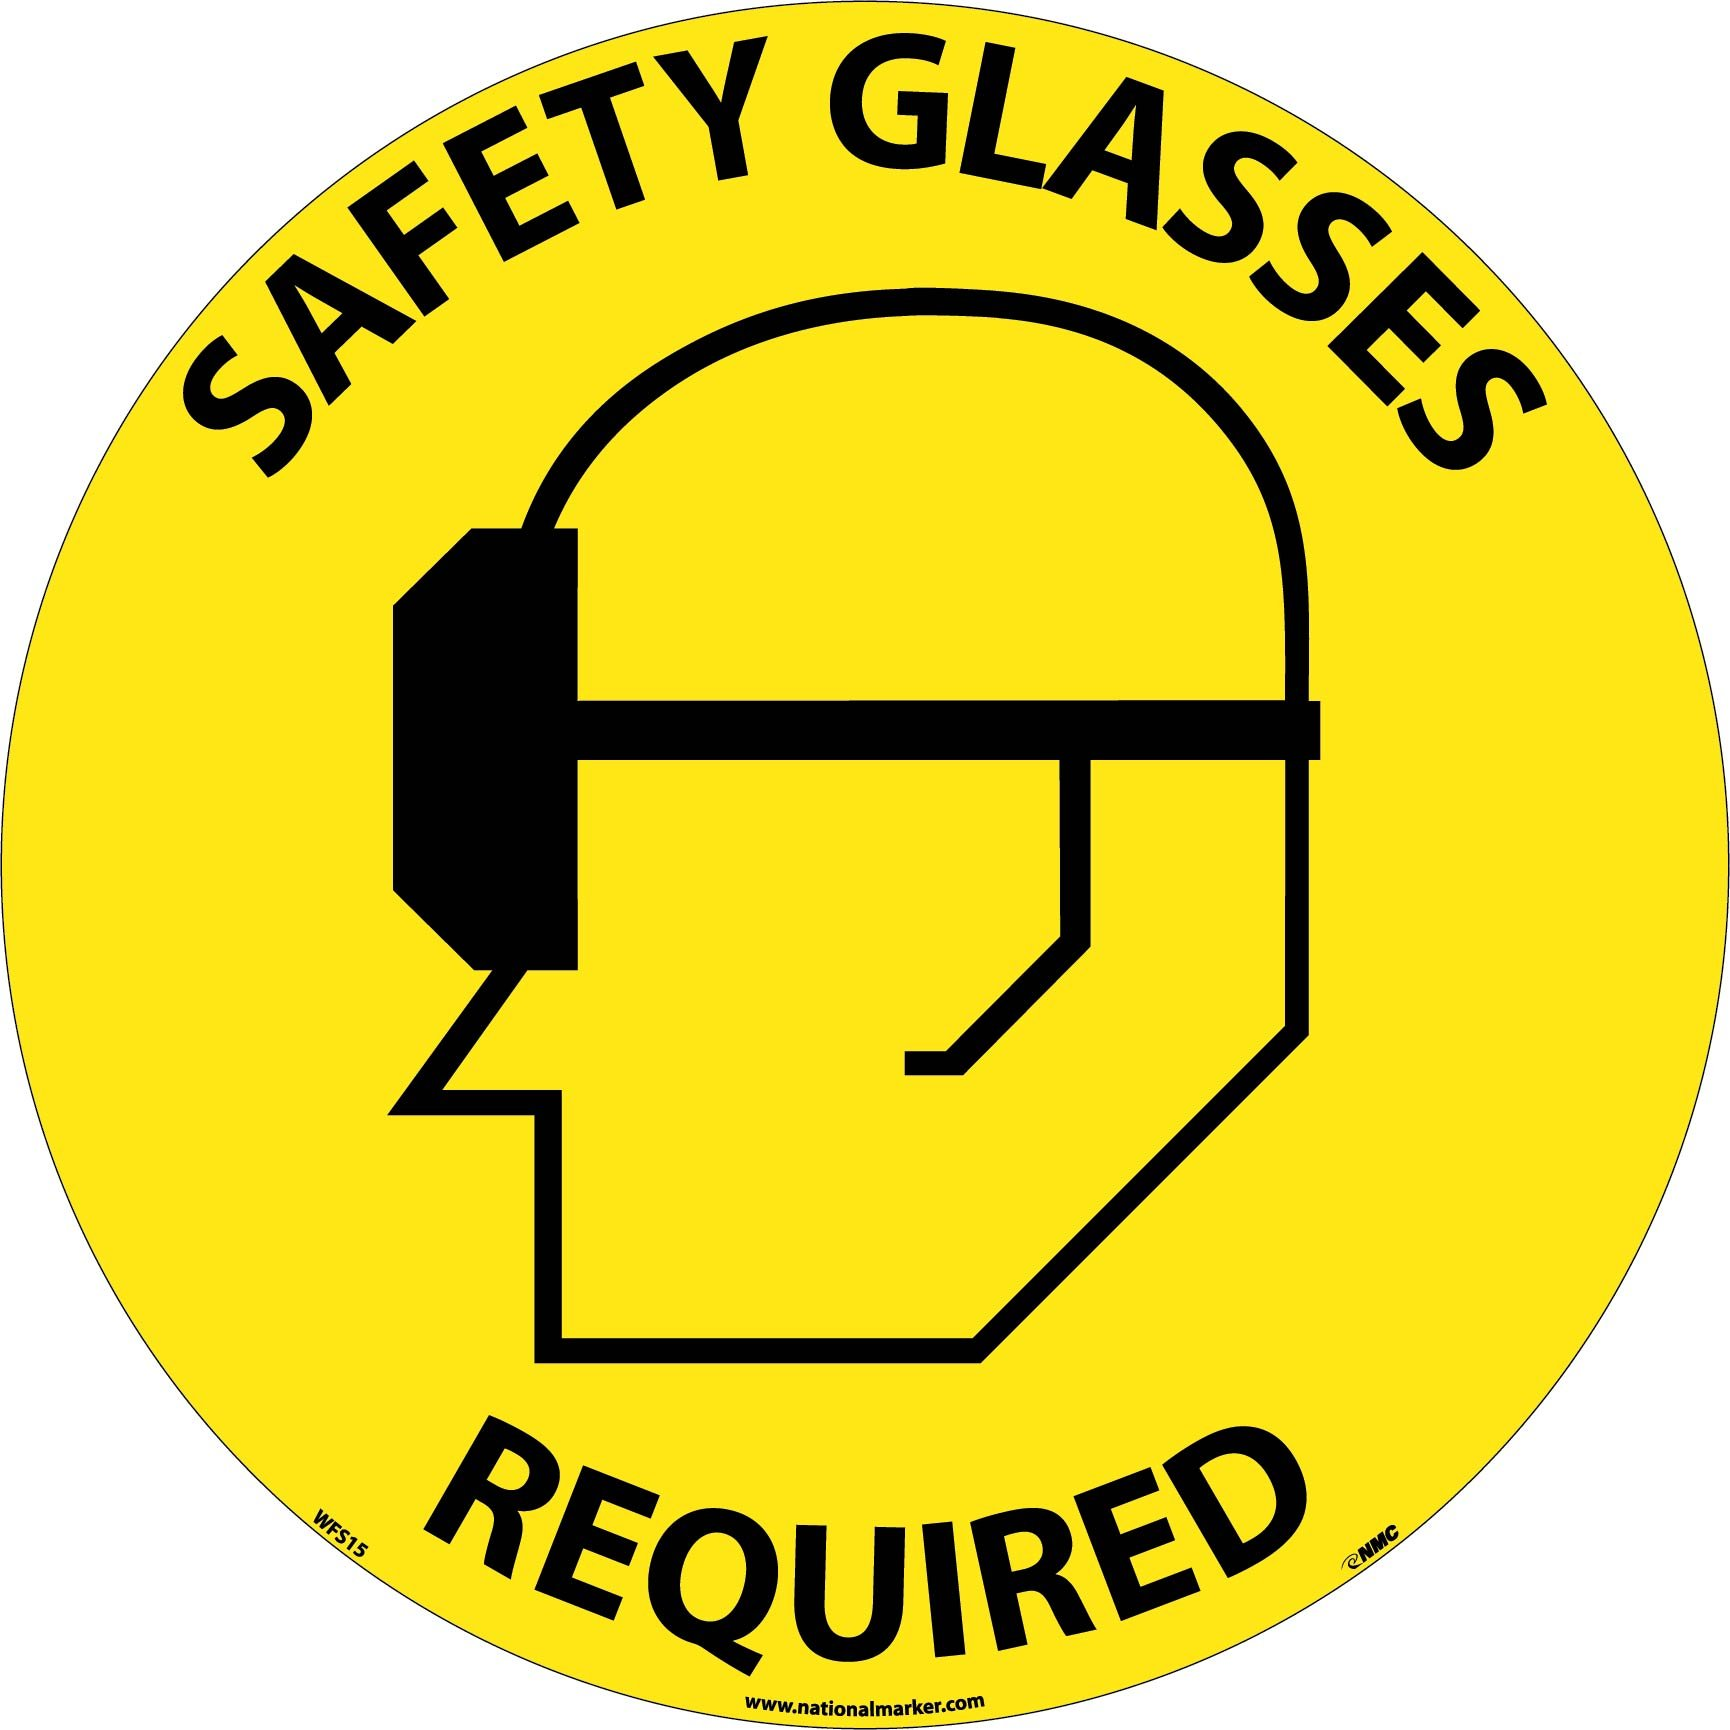 Caution clipart safety sign. Free download best on